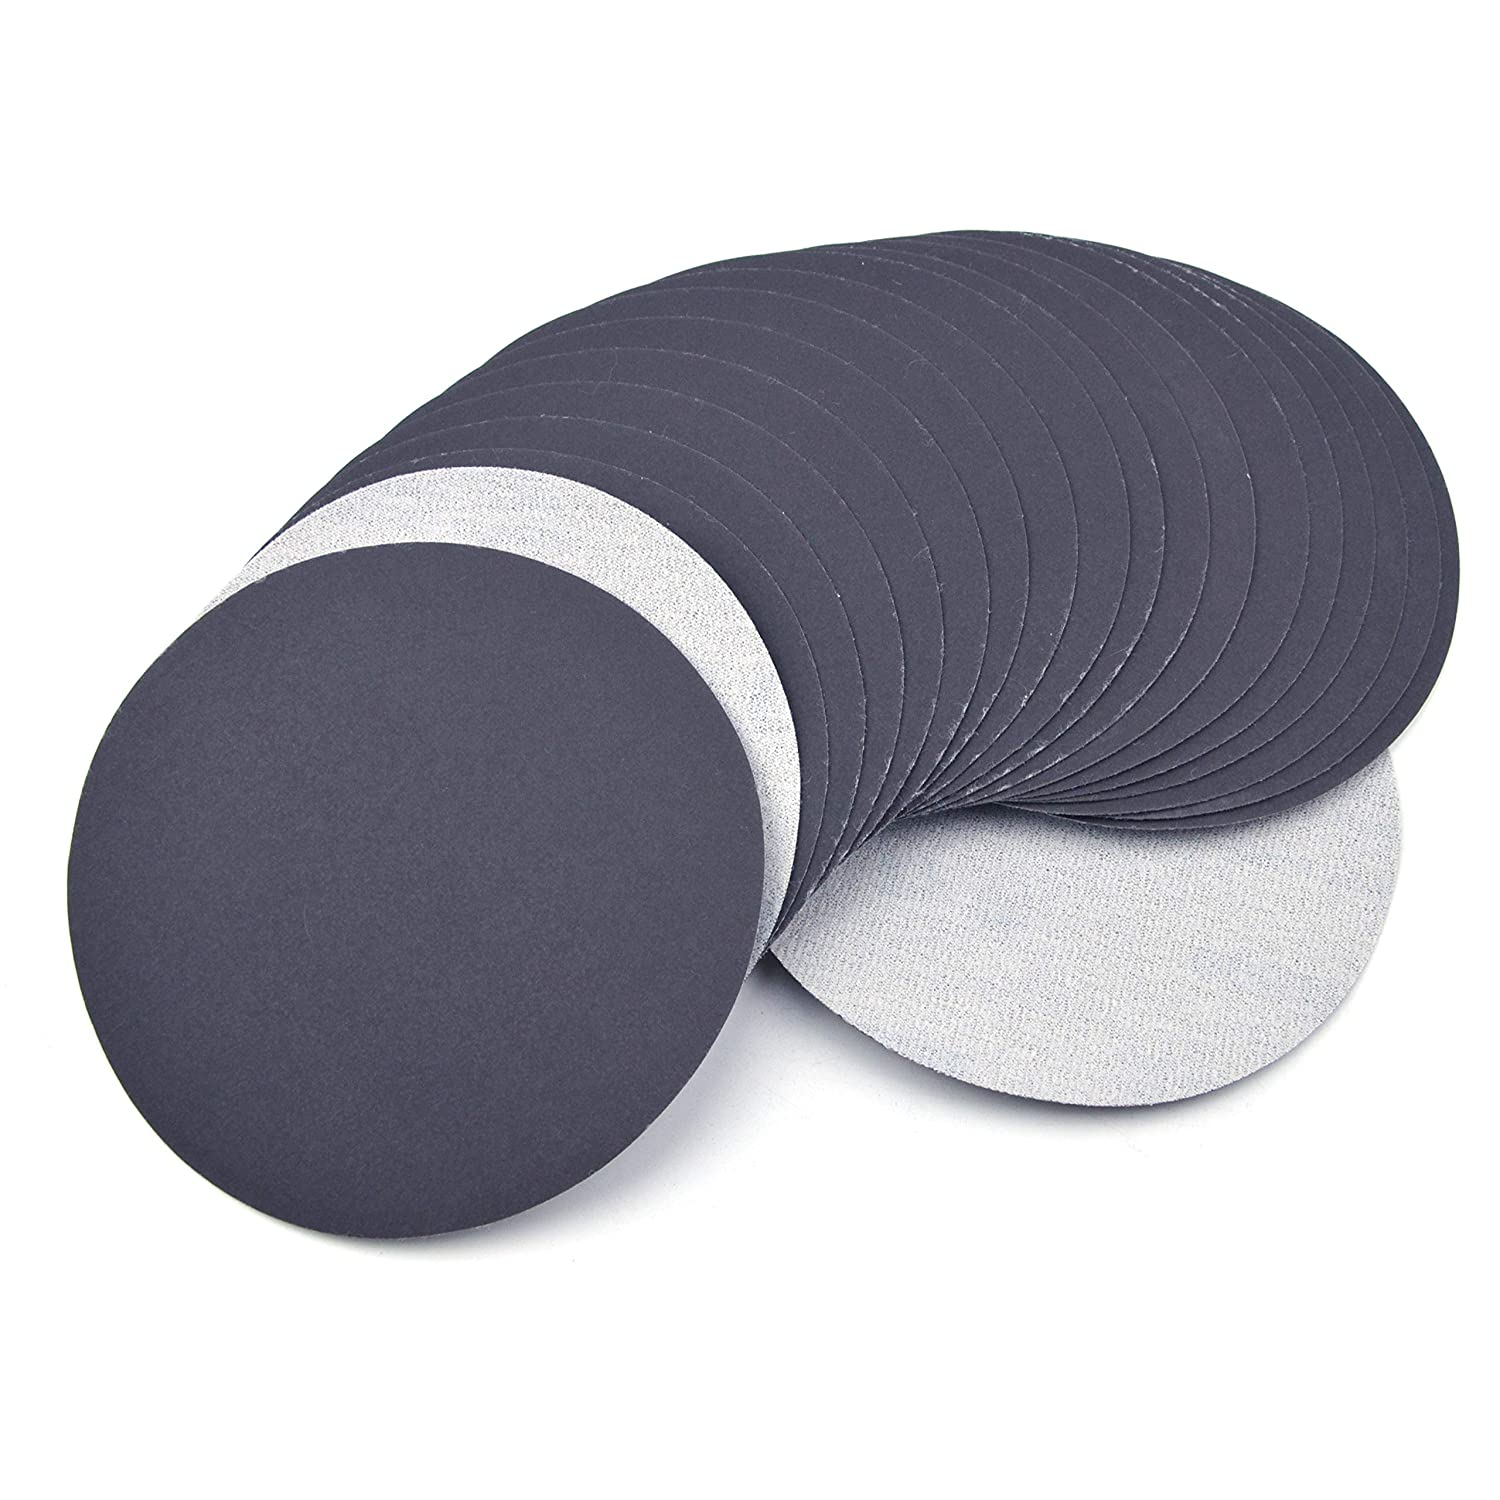 1500 Grit High Performance Waterproof Hook /& Loop Sanding Discs Heavy Duty Silicon Carbide Round Flocking Sandpaper for Wet//Dry Sanding Grinder Polishing Accessories 20-Pack 150mm 6 Inch